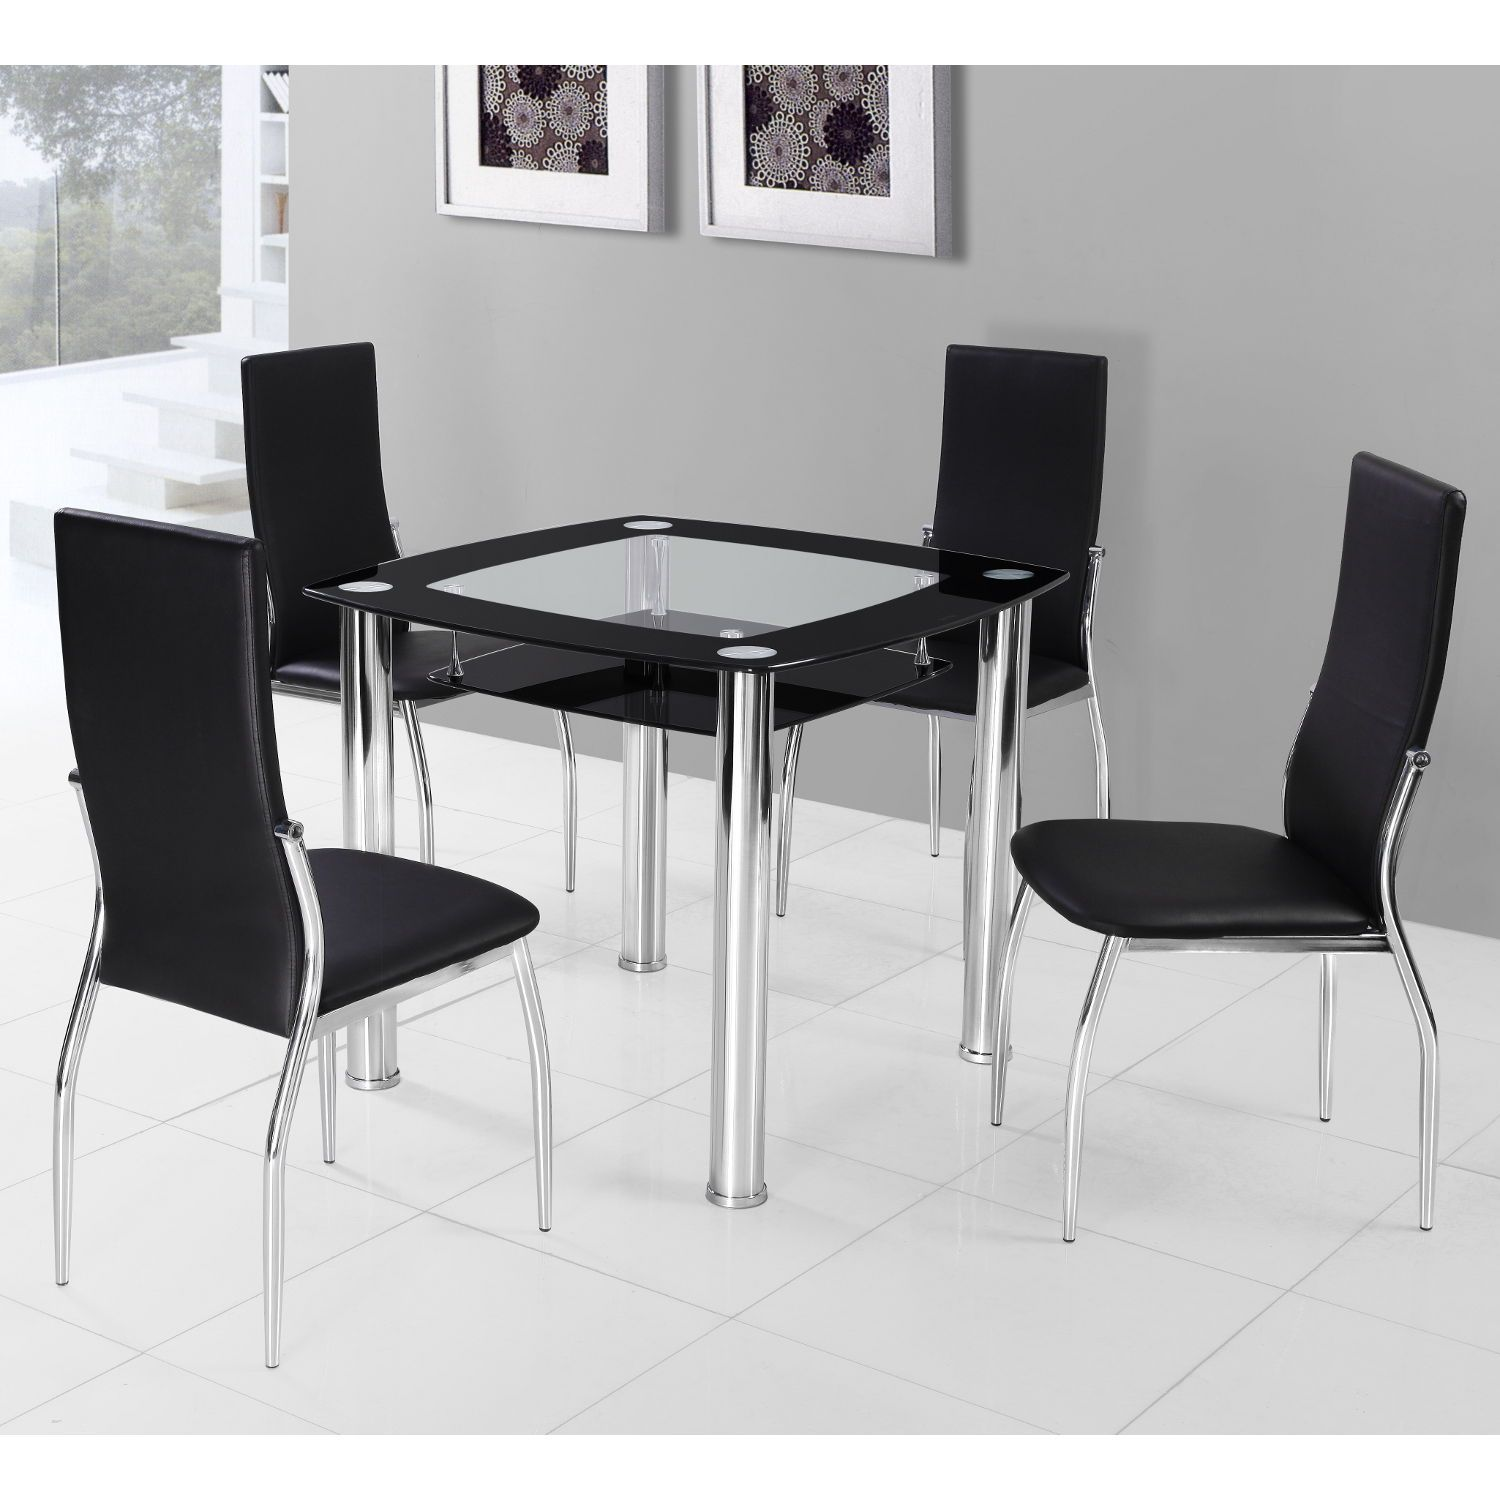 Modern Square Glass Dining Table With Chairs